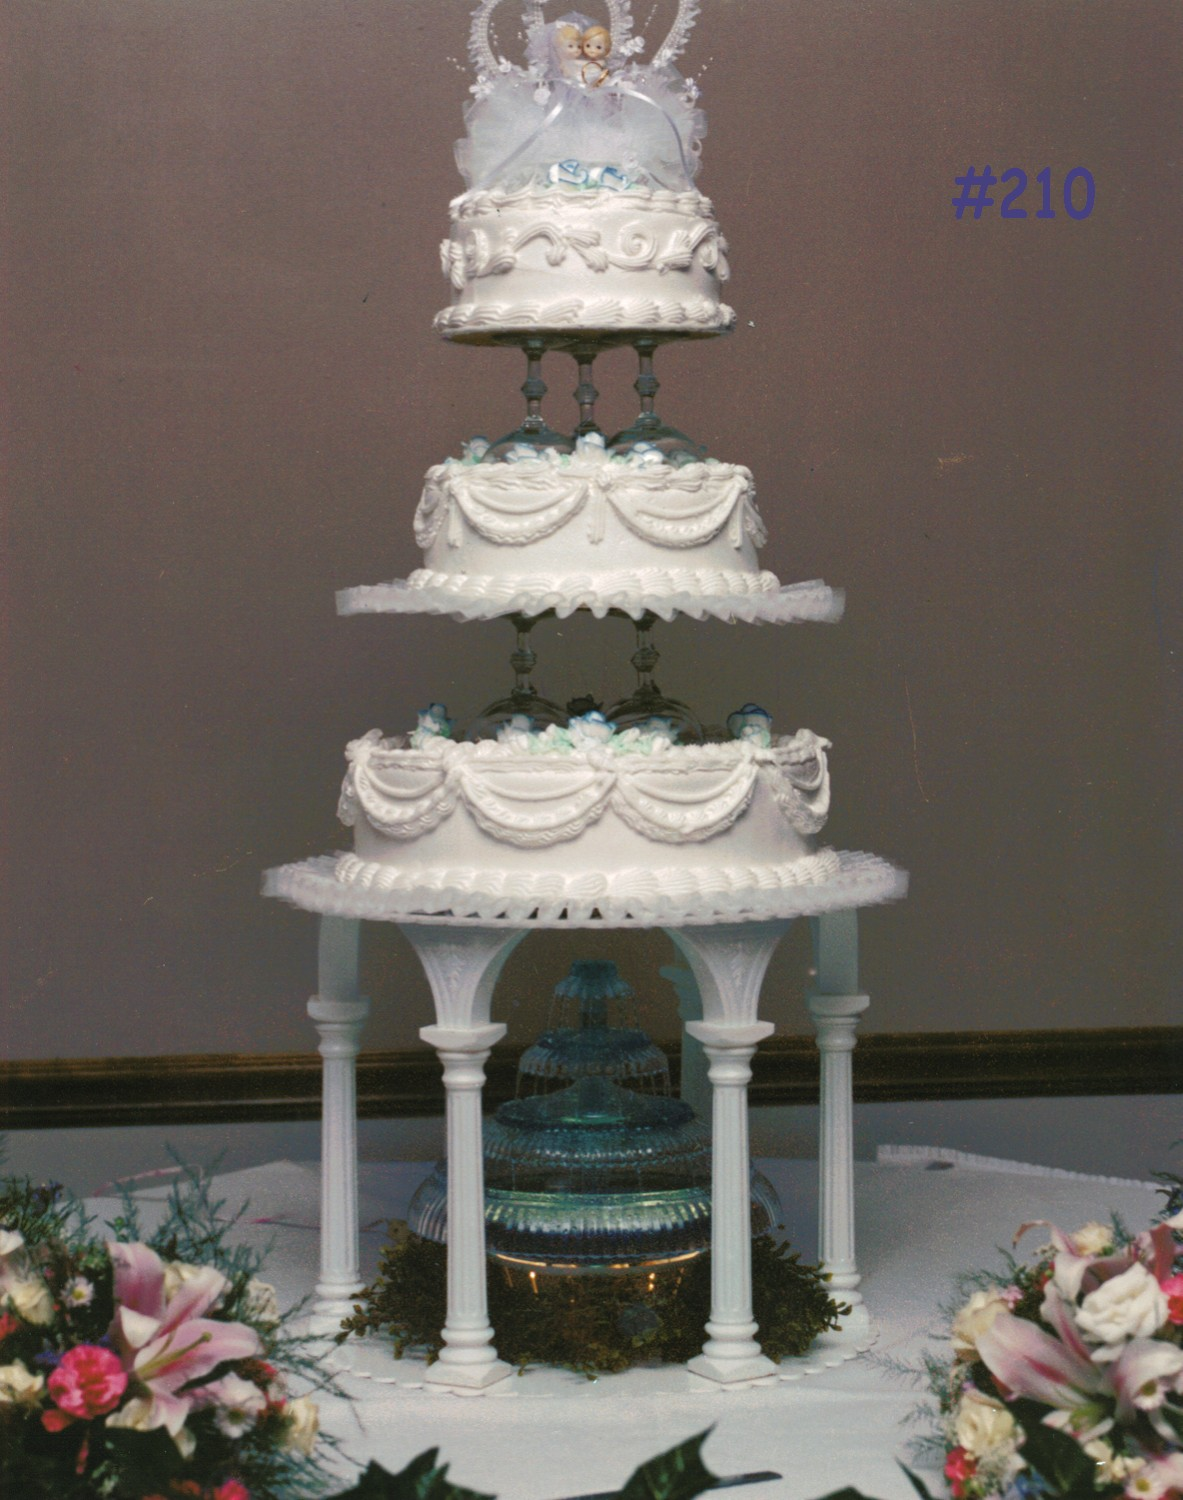 3 Tier Wedding Cake with Fountain